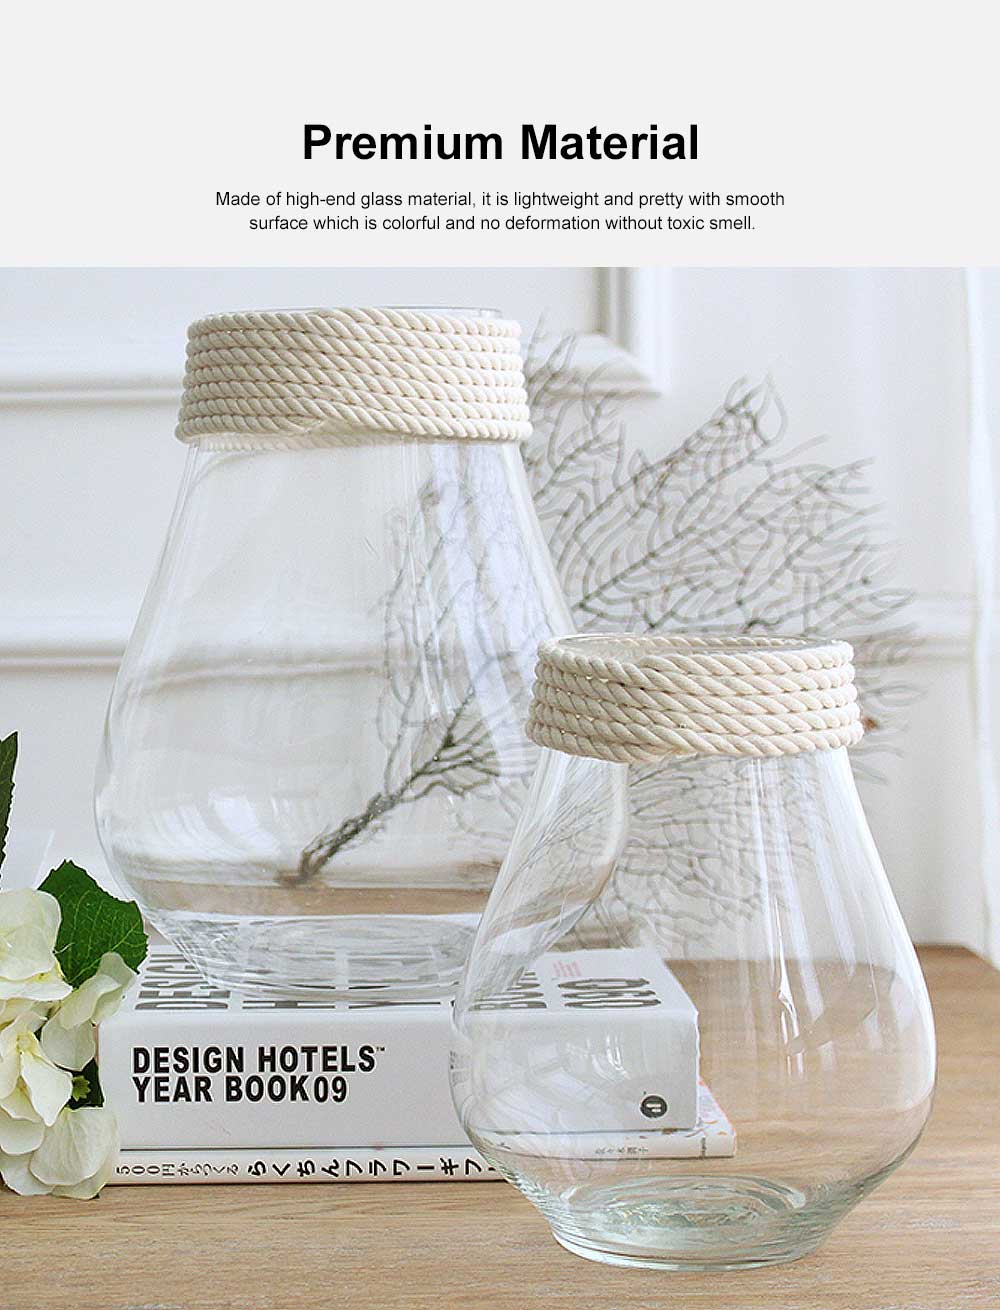 Transparent Glass Vase With Hemp Rope, Household Furnishings Decorative Vase 1